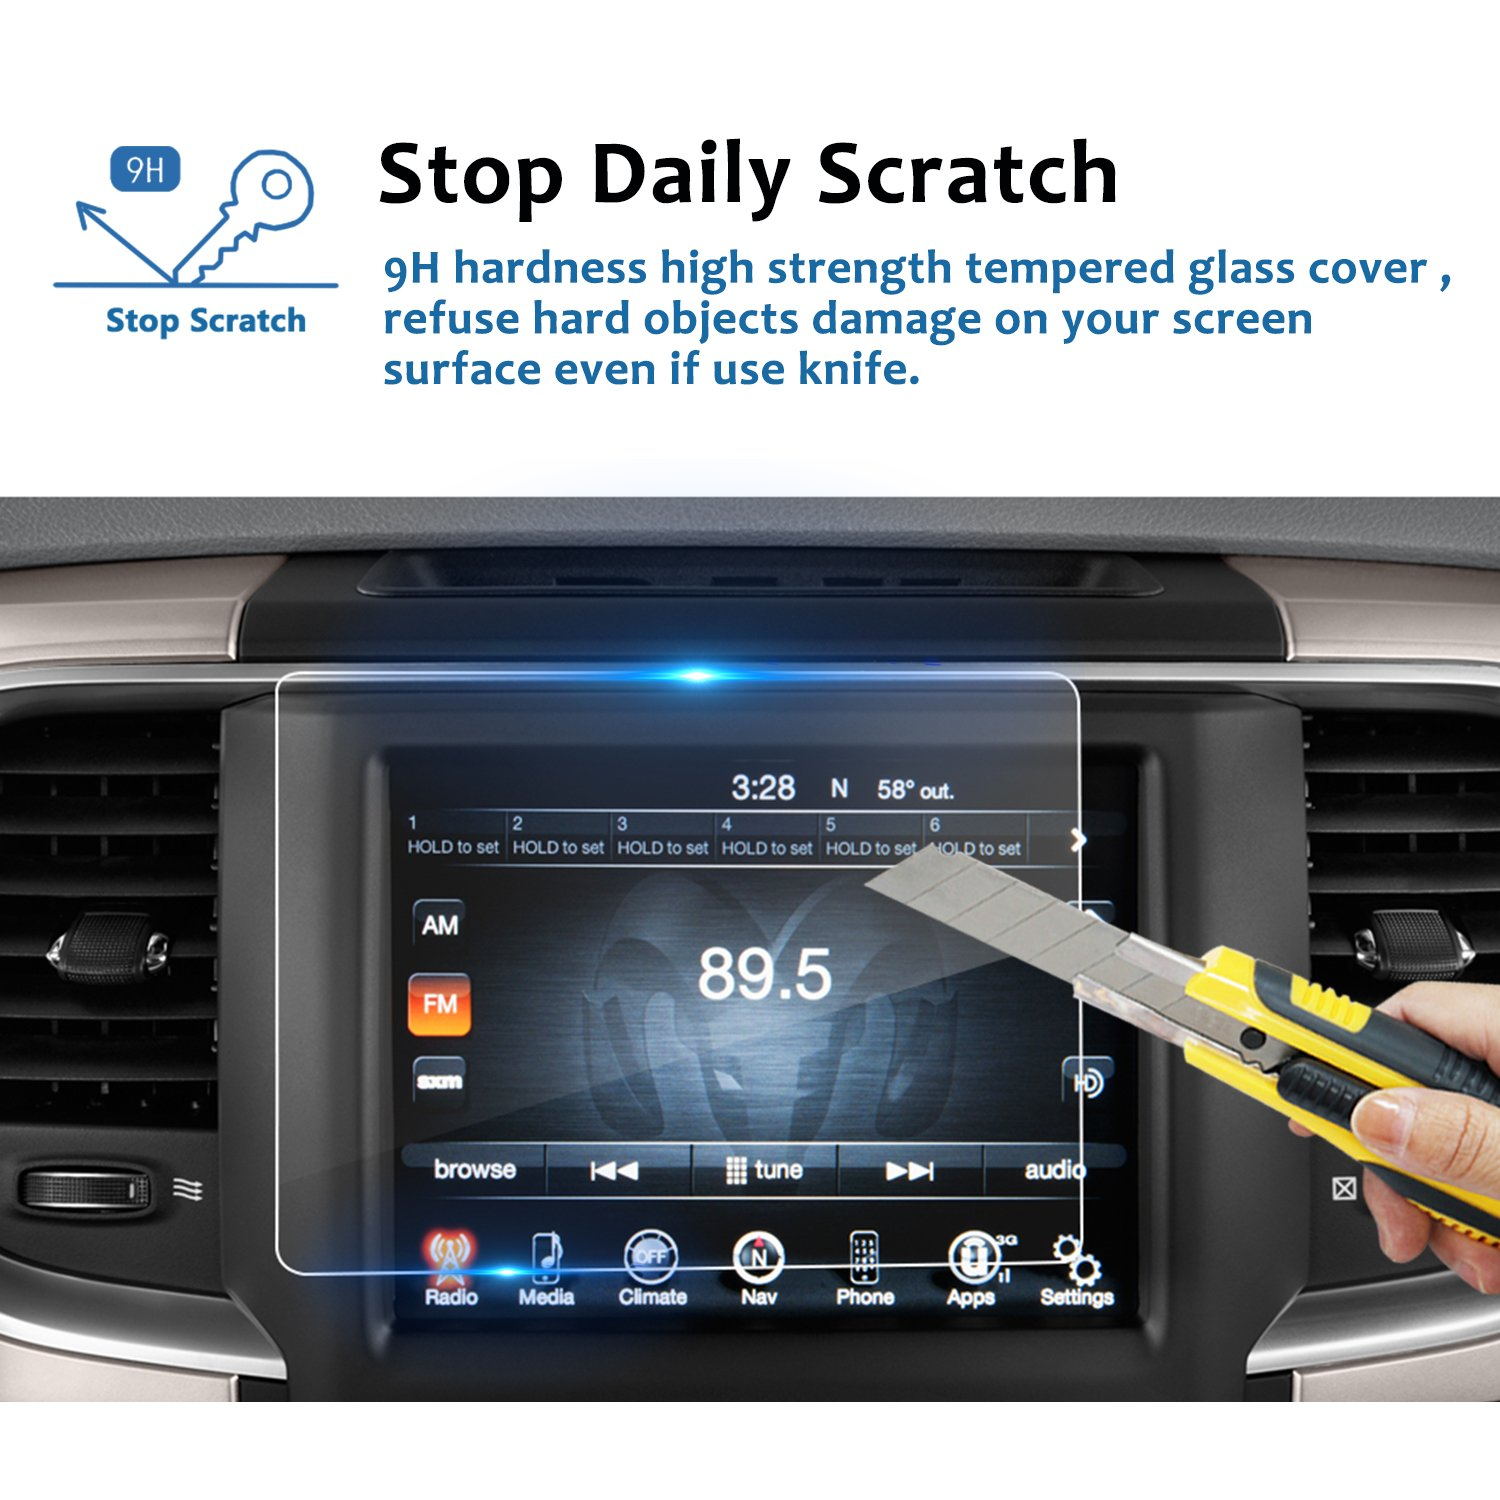 LFOTPP 2013-2018 Dodge Ram 1500 2500 3500 Uconnect 8.4 Inch Audio Touchscreen Display Screen Protector, Tempered Glass Car Navigation Protective Film 9H Anti-Scratch(1 PCS)